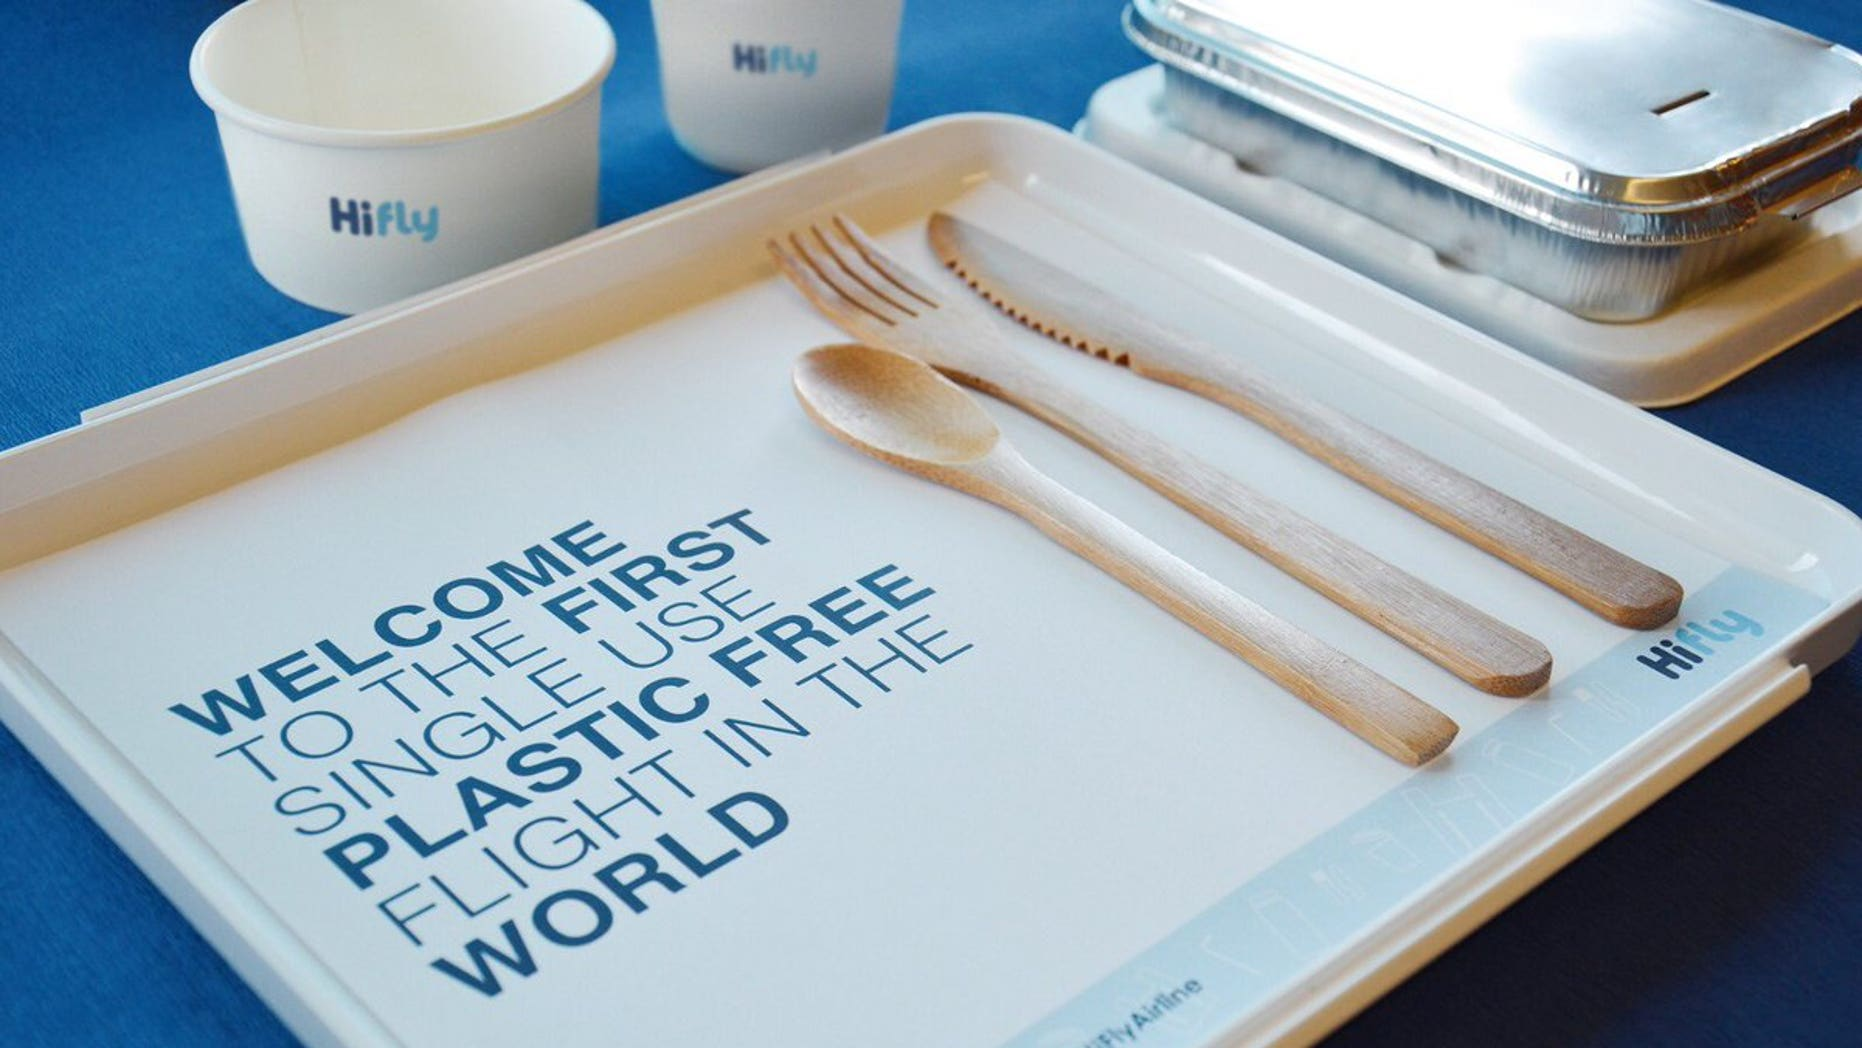 The airline will be replacing plastic containers with natural bamboo cutlery and compostable containers, among other innovations. Three more test runs will follow.